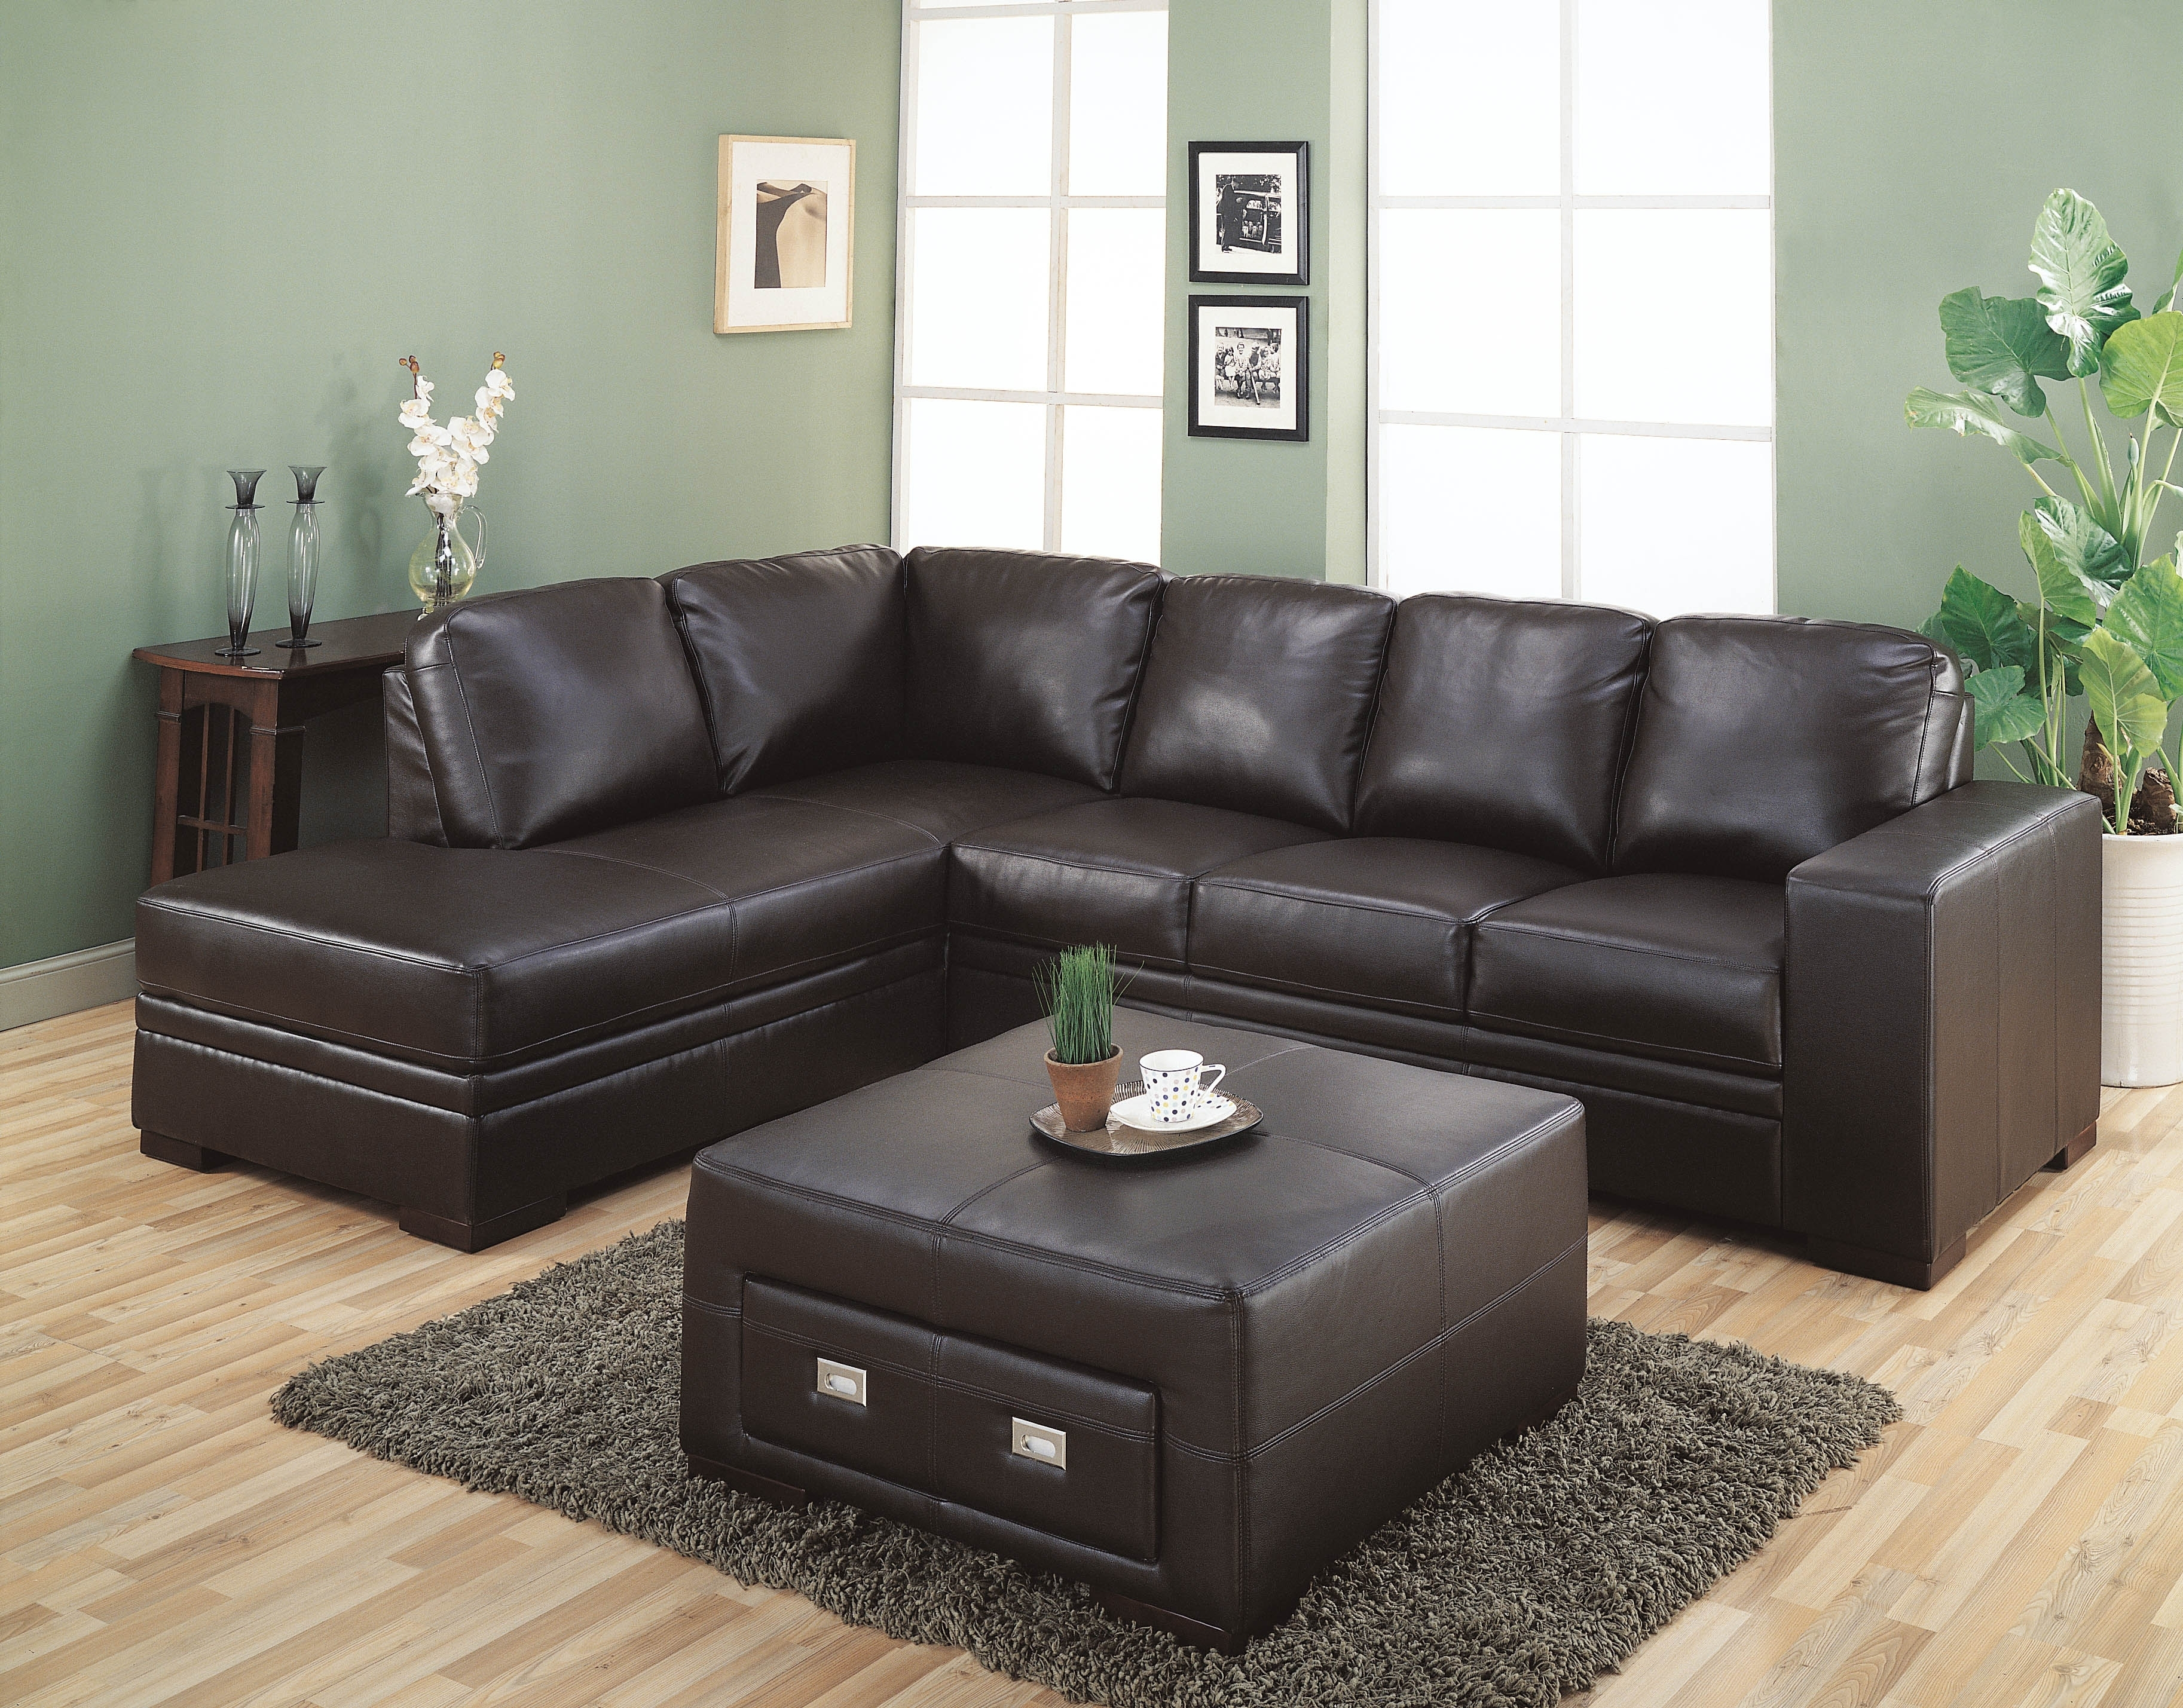 Sofa Leather Sectional Sofas Collection Of Brown Black Couch For Within Memphis Sectional Sofas (Image 10 of 10)